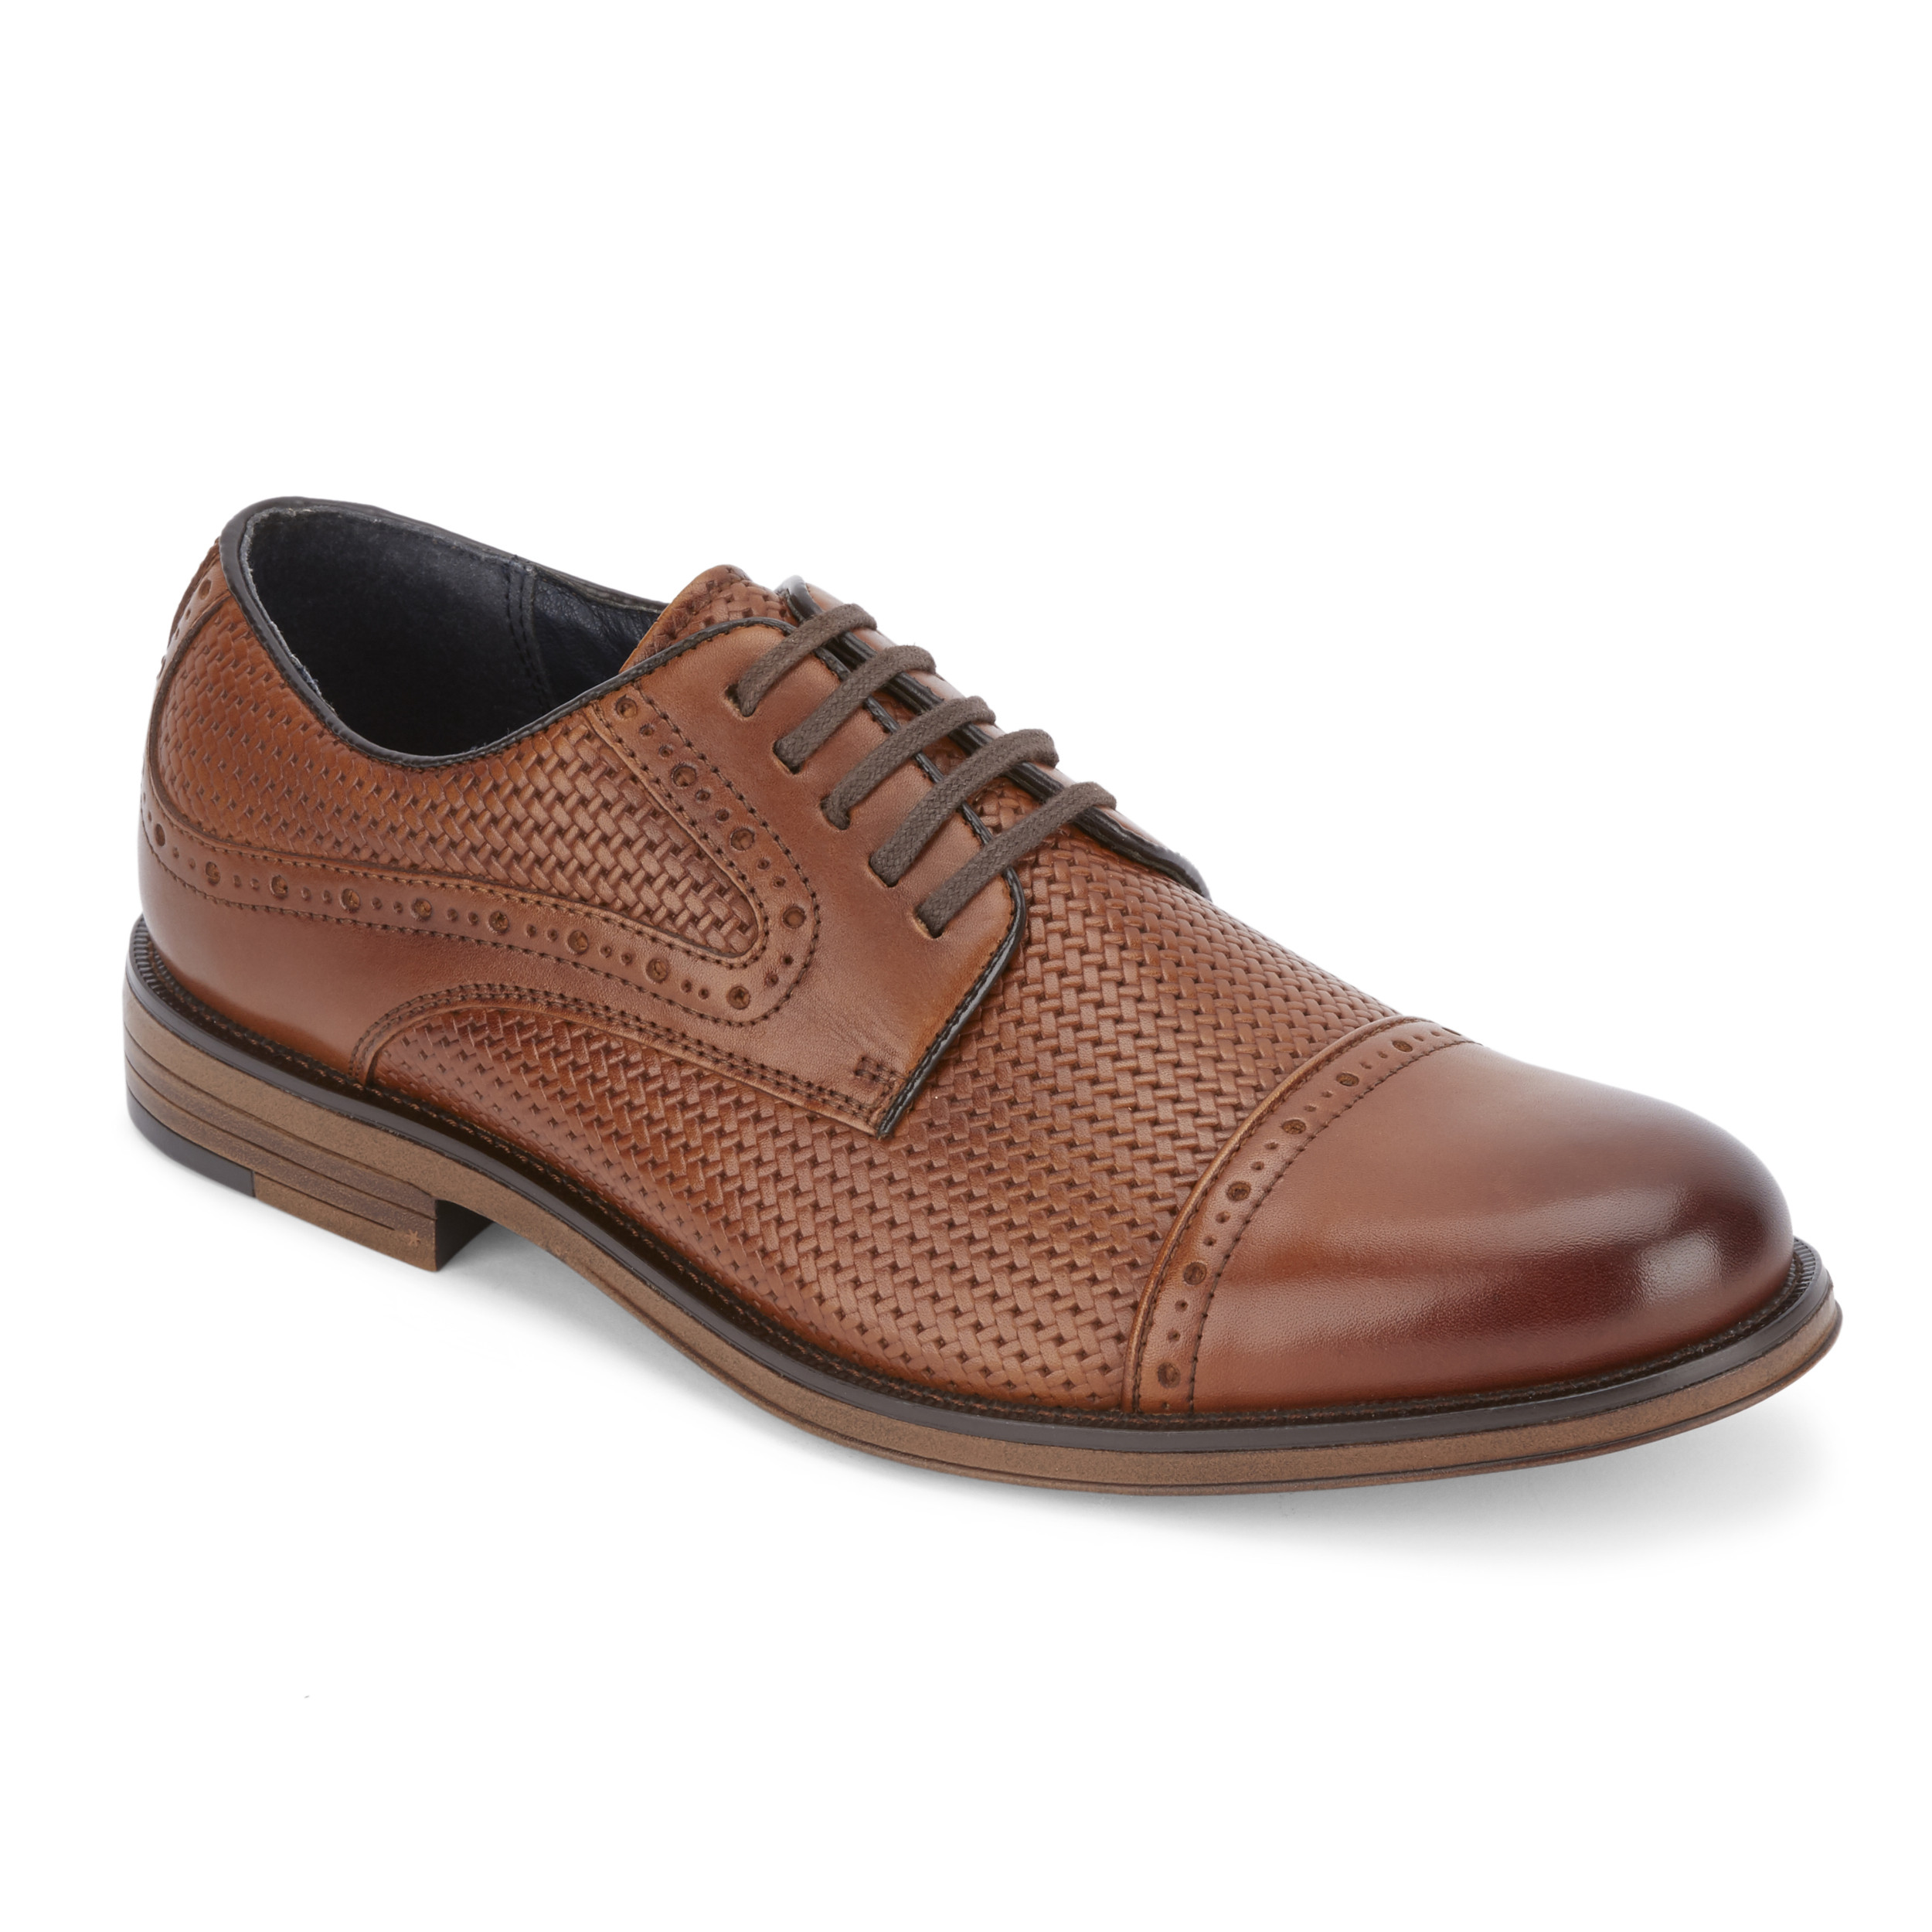 Dockers Shoes: 62% Off